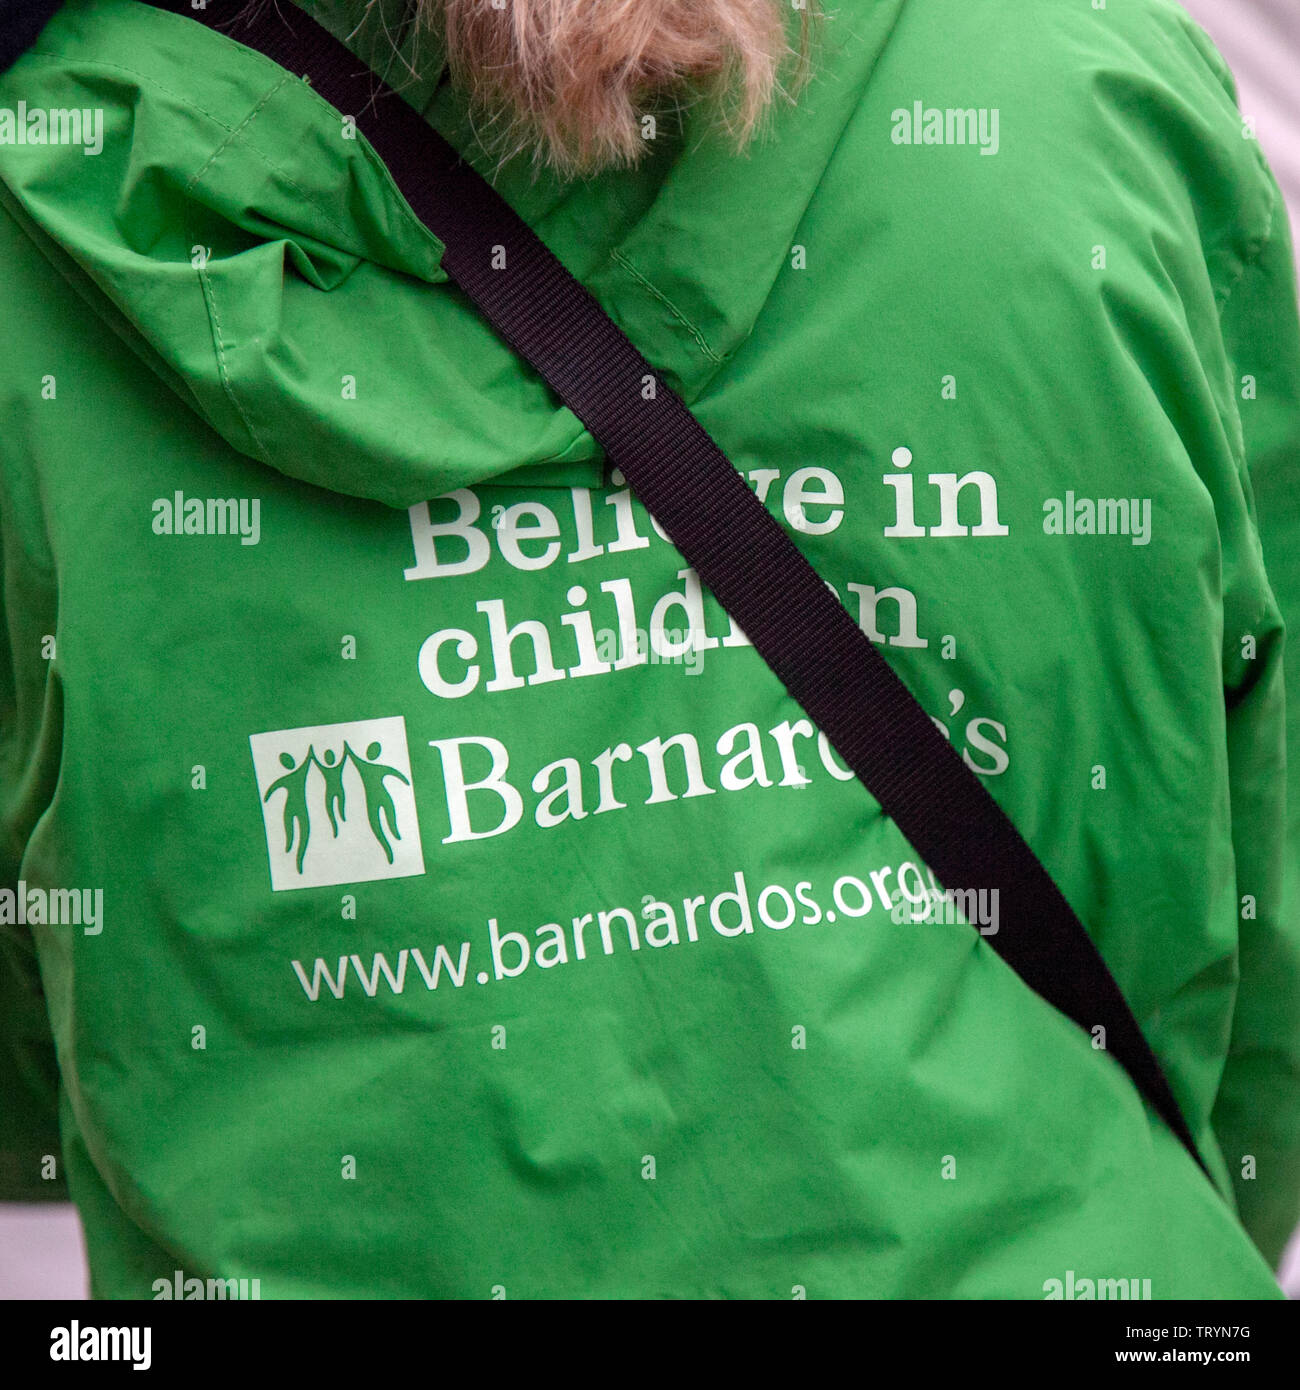 Believe in Children, Charity Barnandos fundraisers in Manchester, city centre, UK - Stock Image